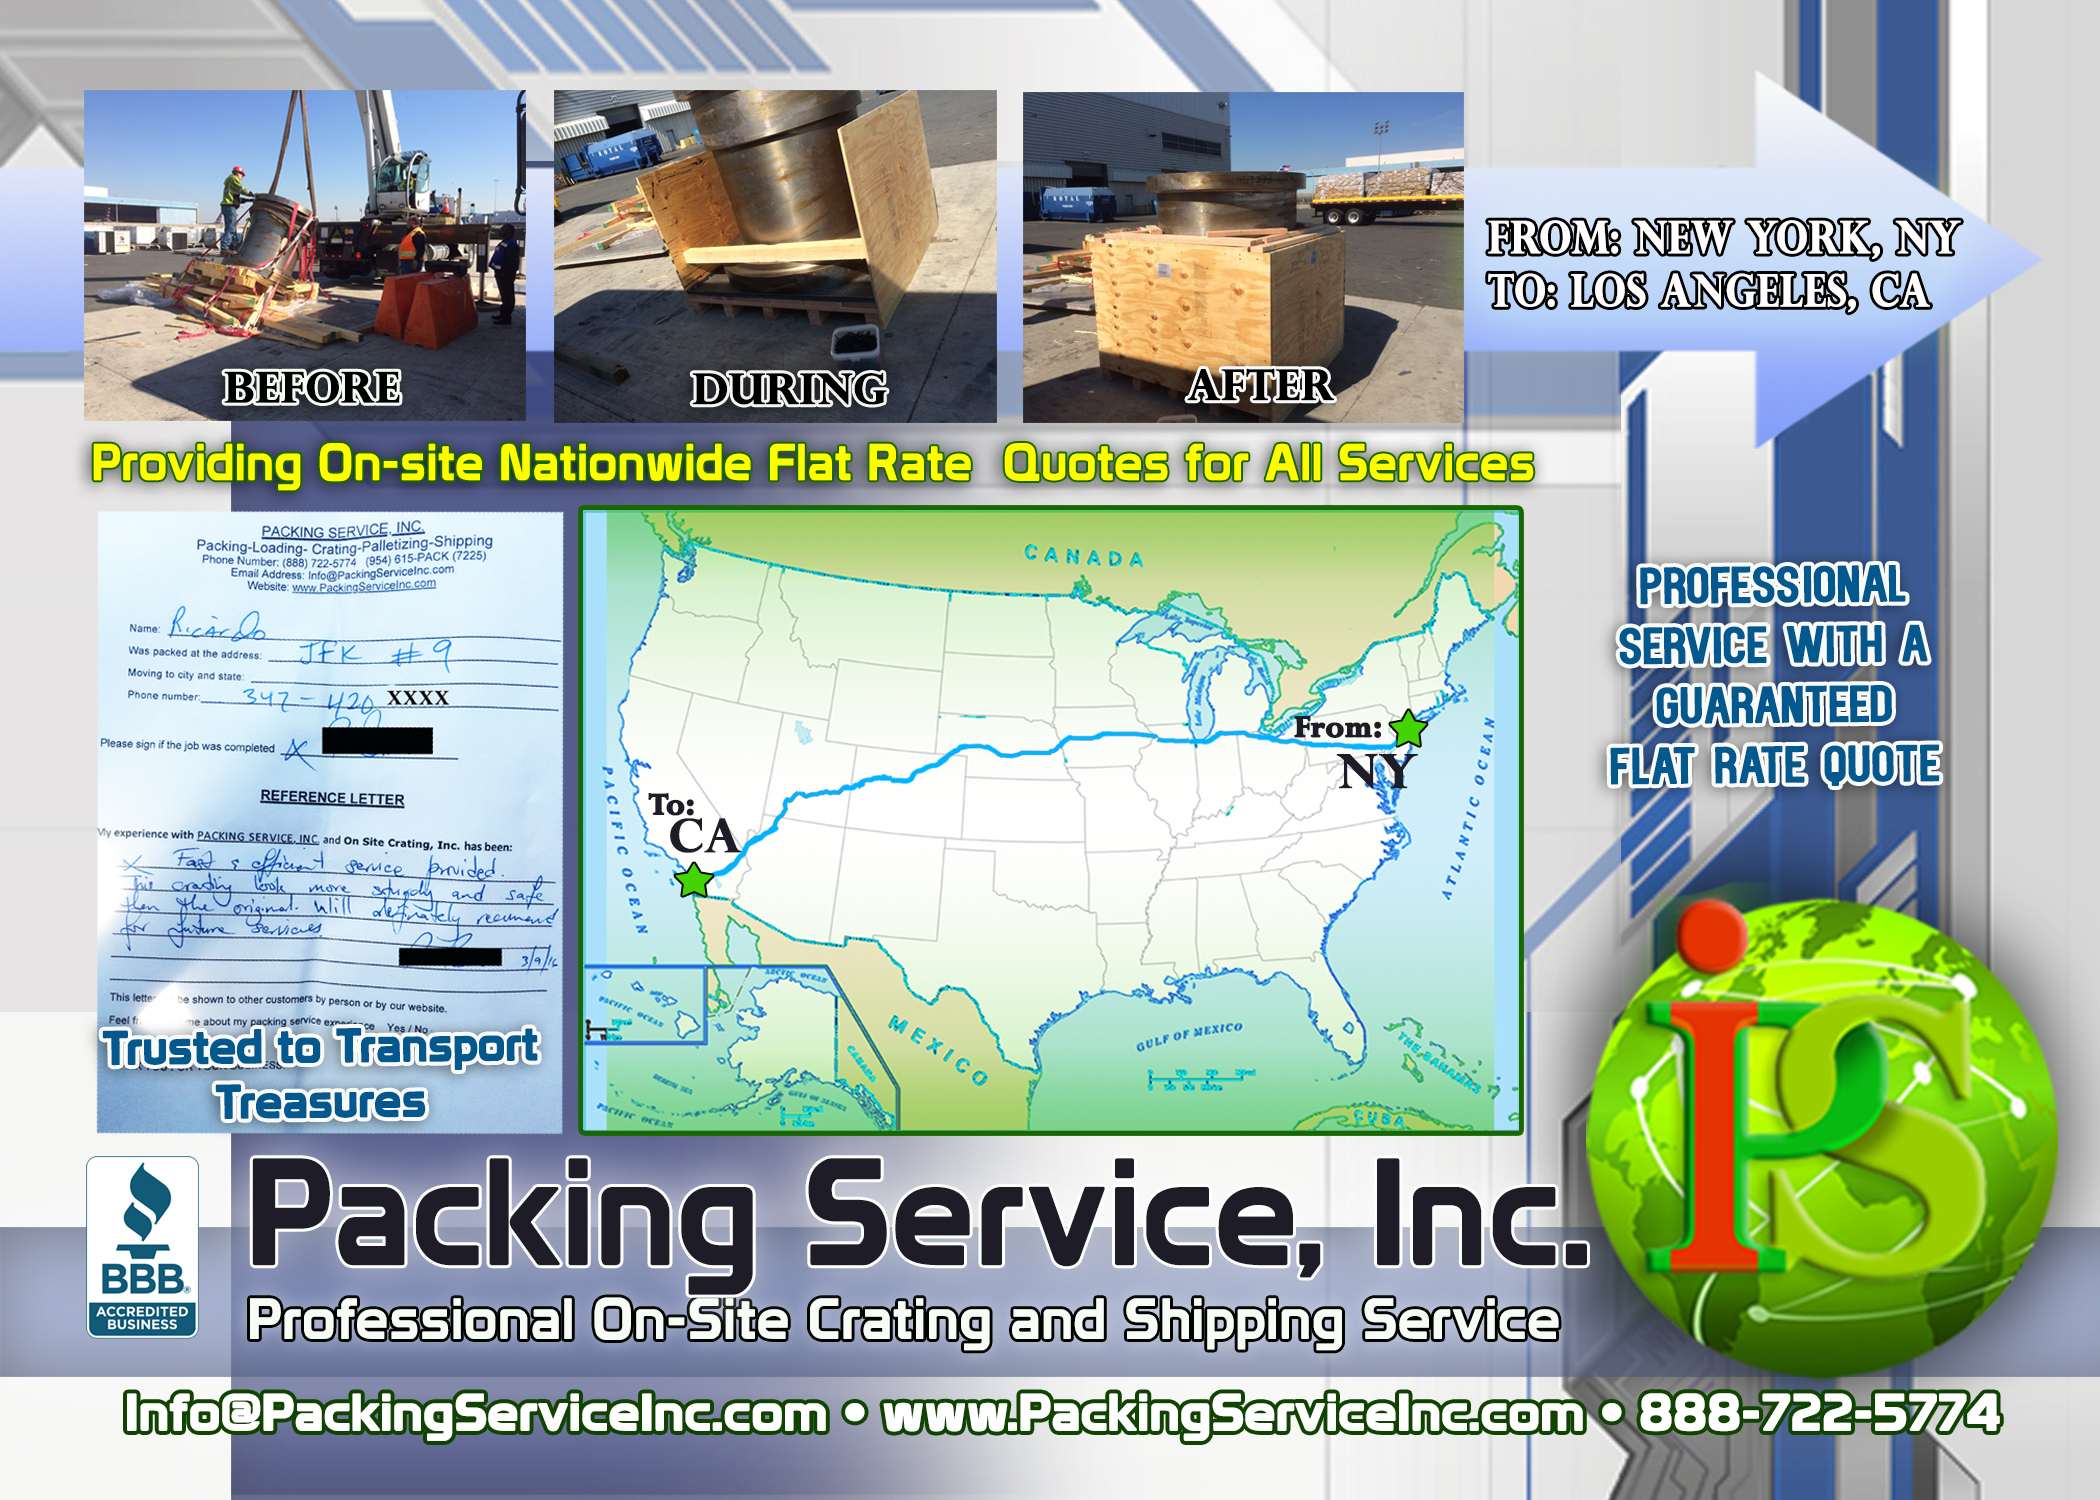 Crating and Shipping from JFK airport NY to Los Angeles, CA with Packing Service, Inc. 4